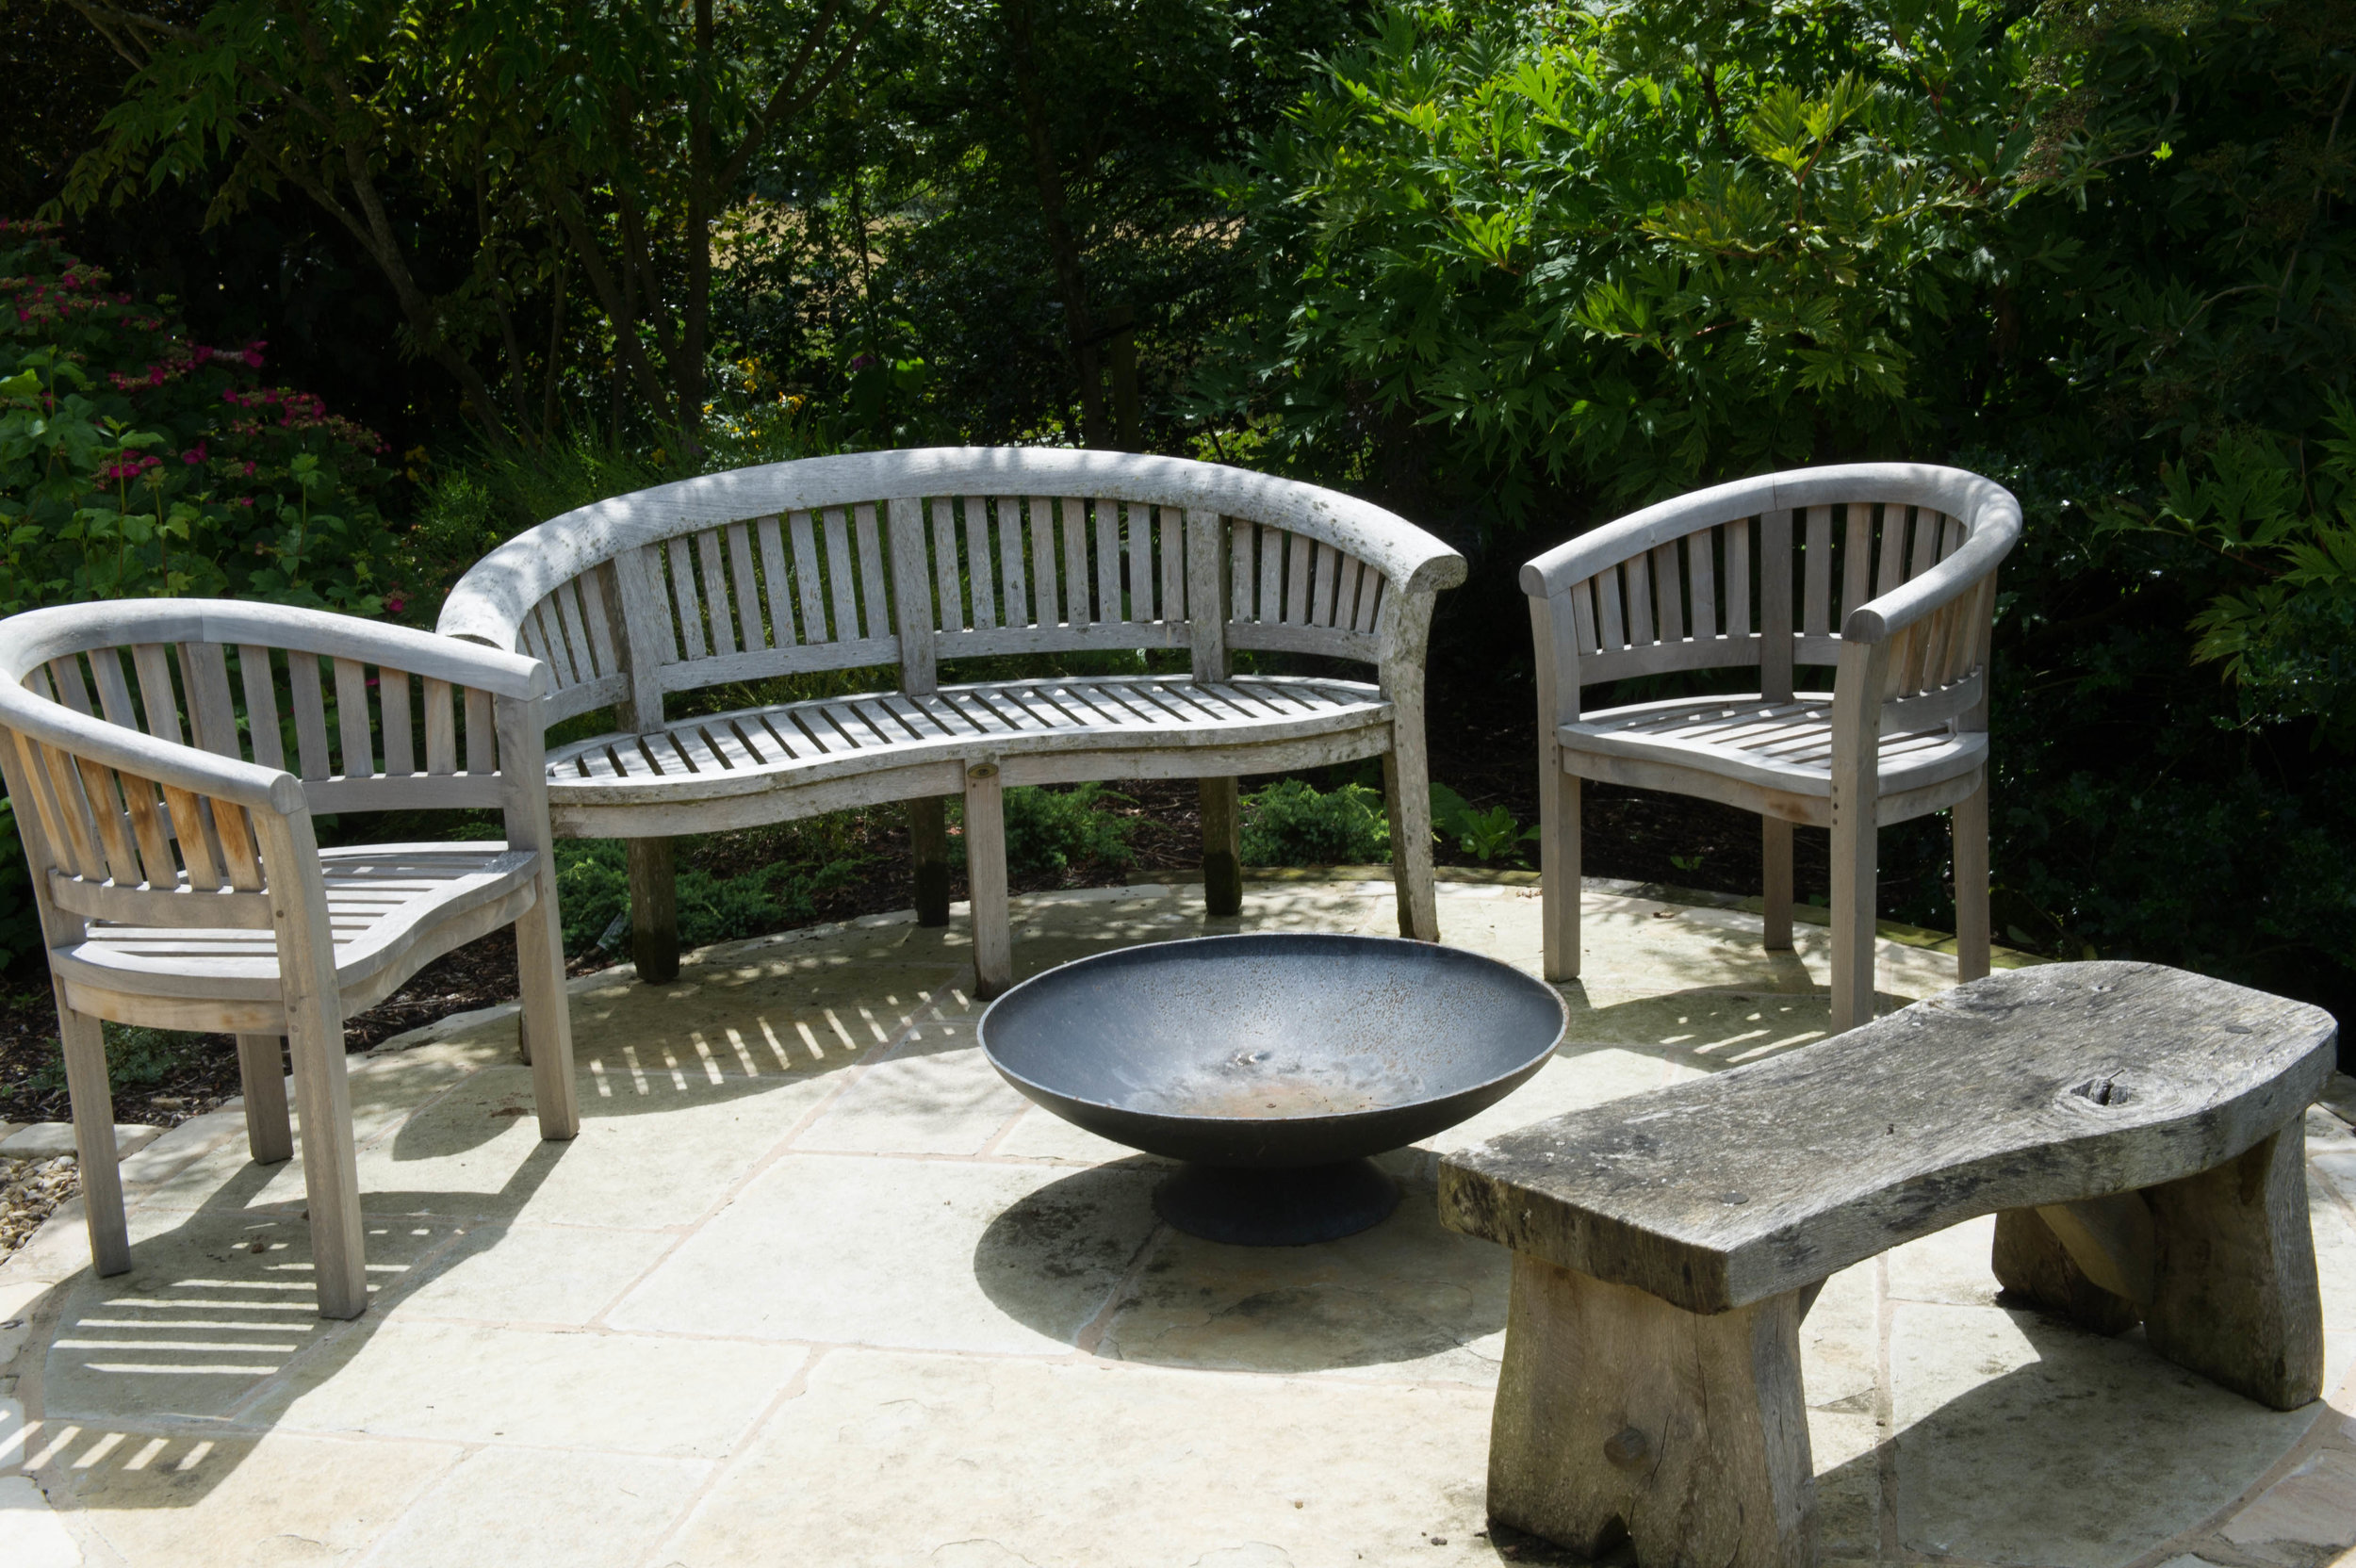 Timber garden furniture with firepit.